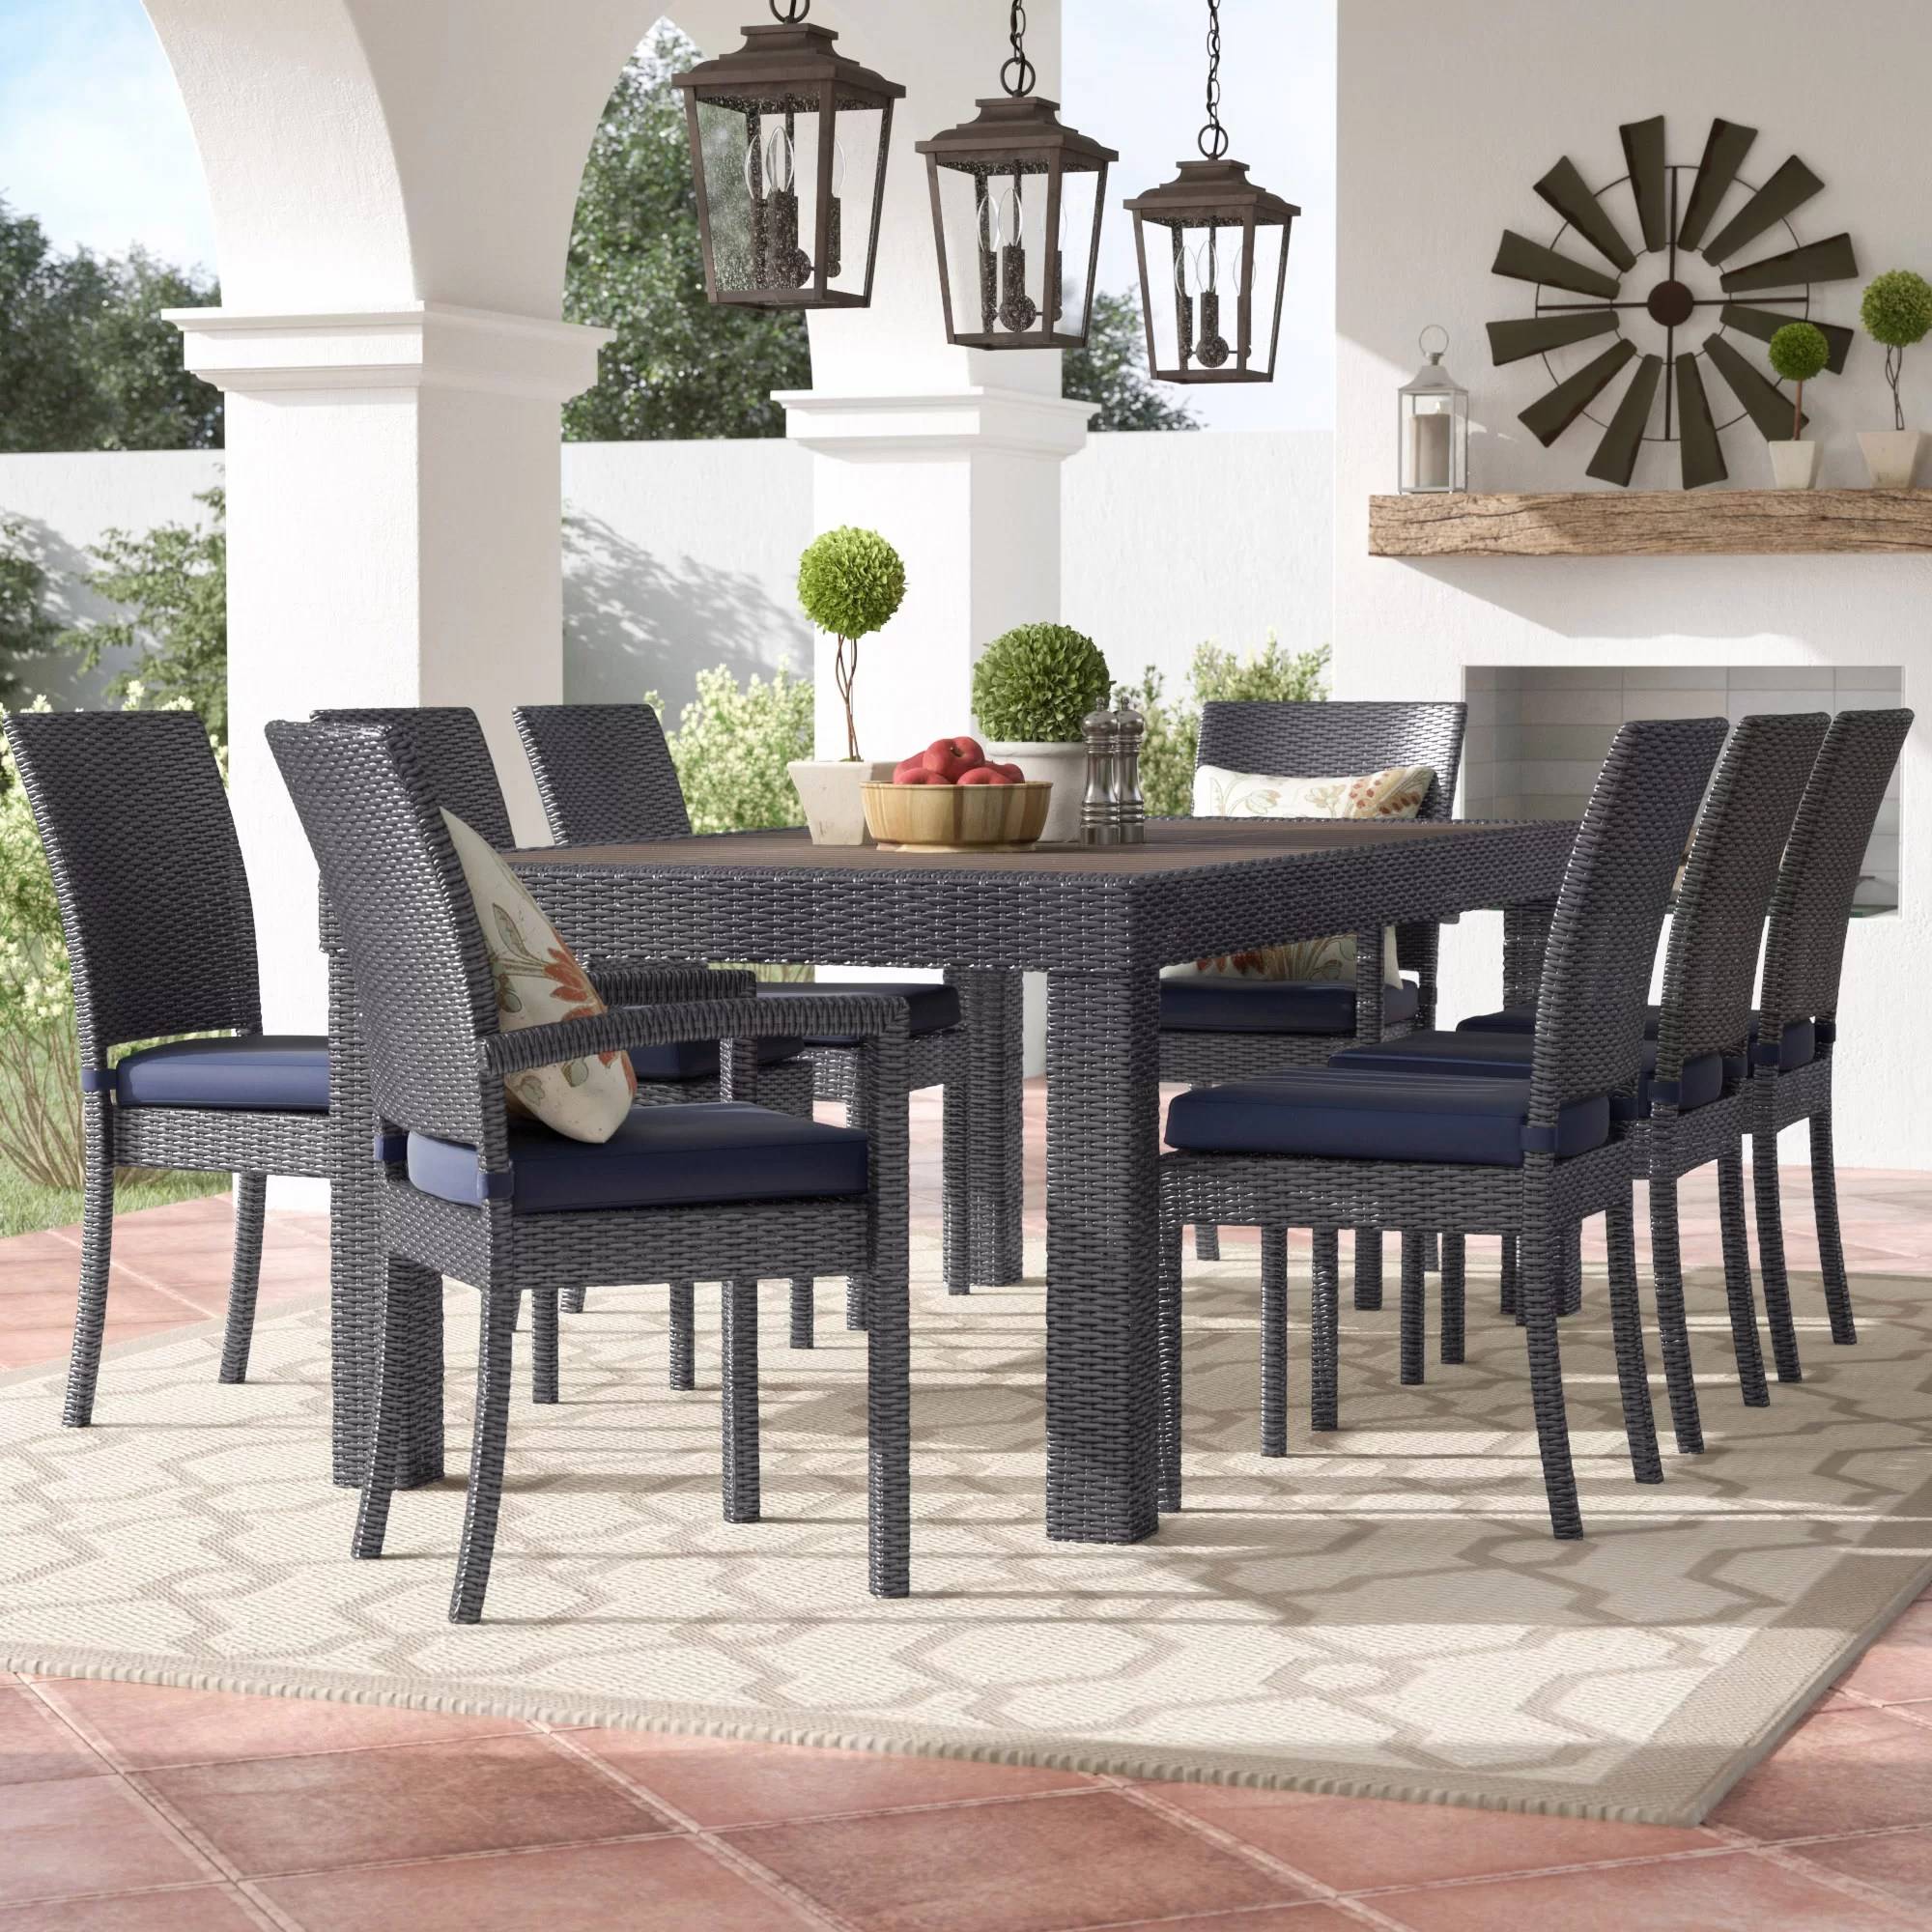 9 Piece Outdoor Dining Set Northridge 9 Piece Sunbrella Dining Set With Cushion